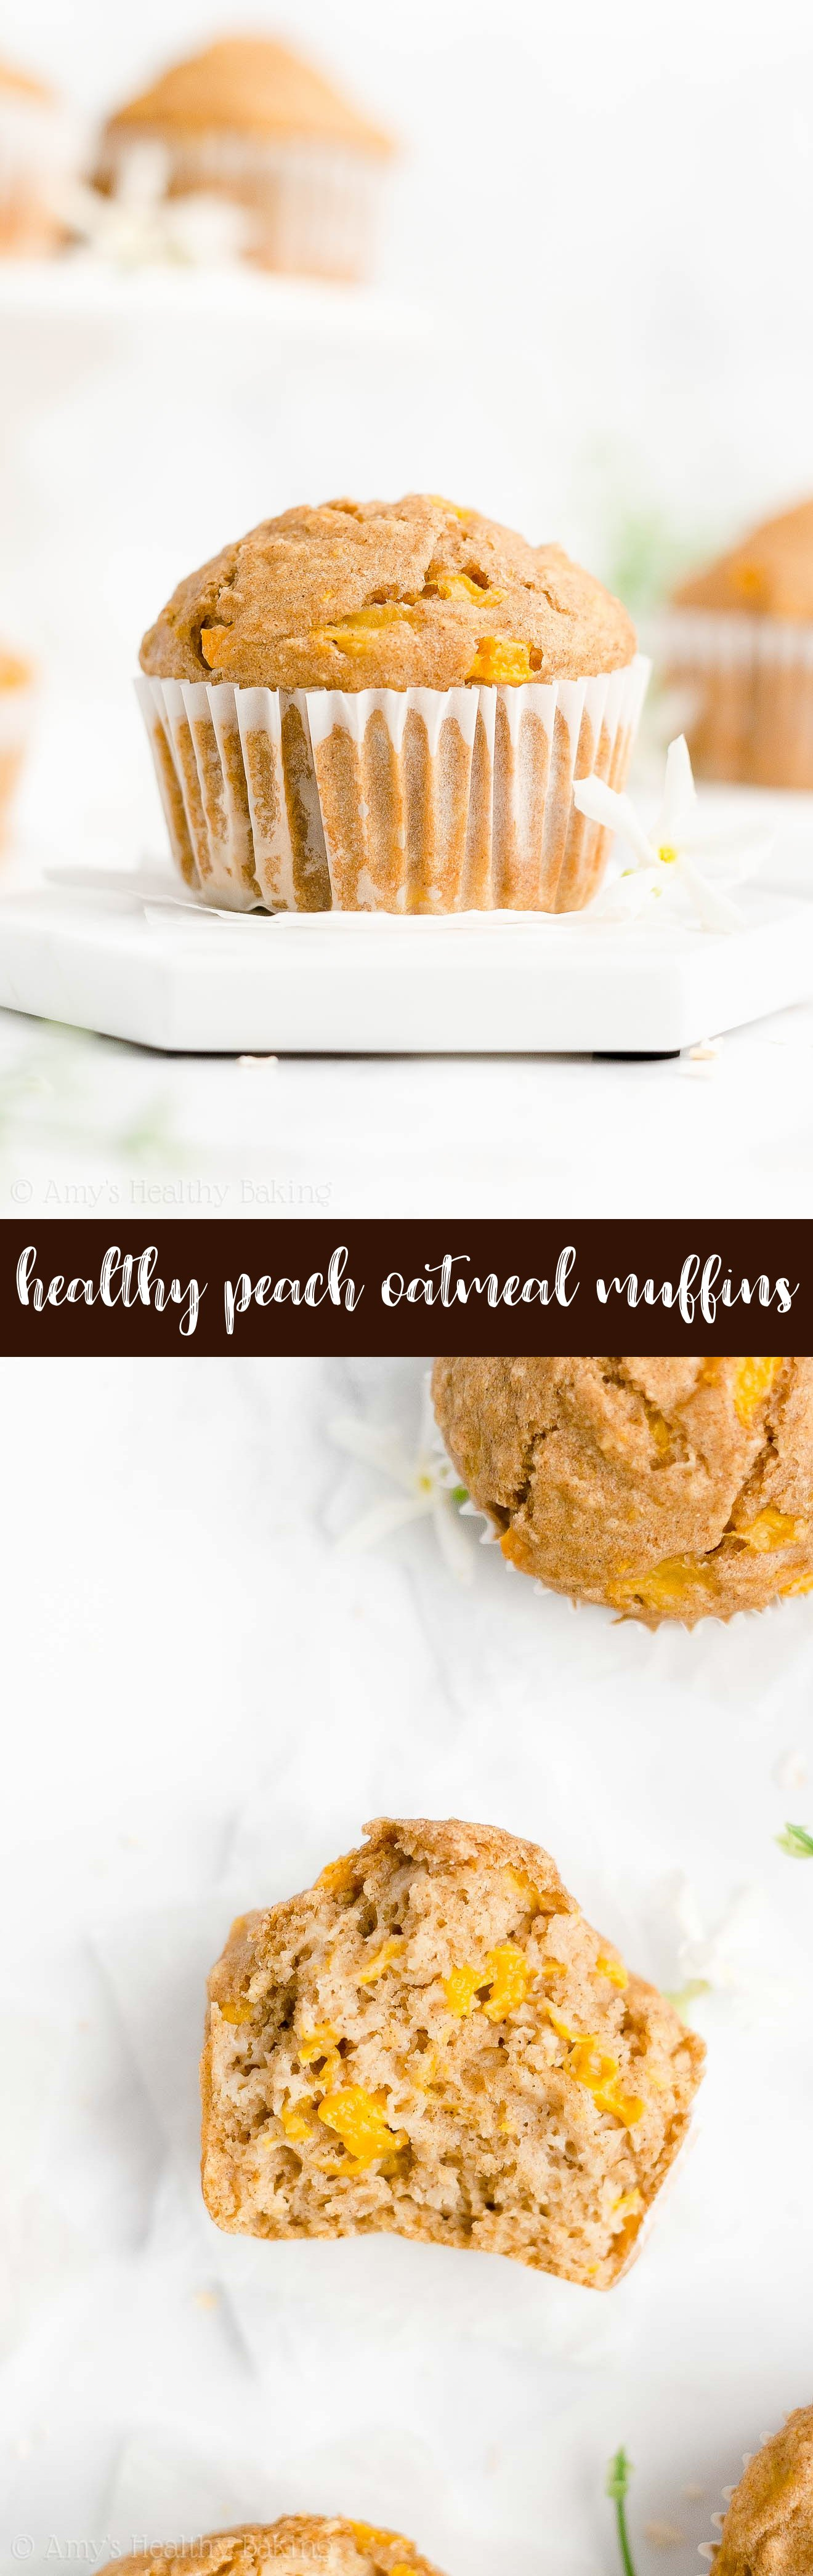 Best Ever Easy Healthy Gluten Free Greek Yogurt No Sugar Peach Oatmeal Muffins